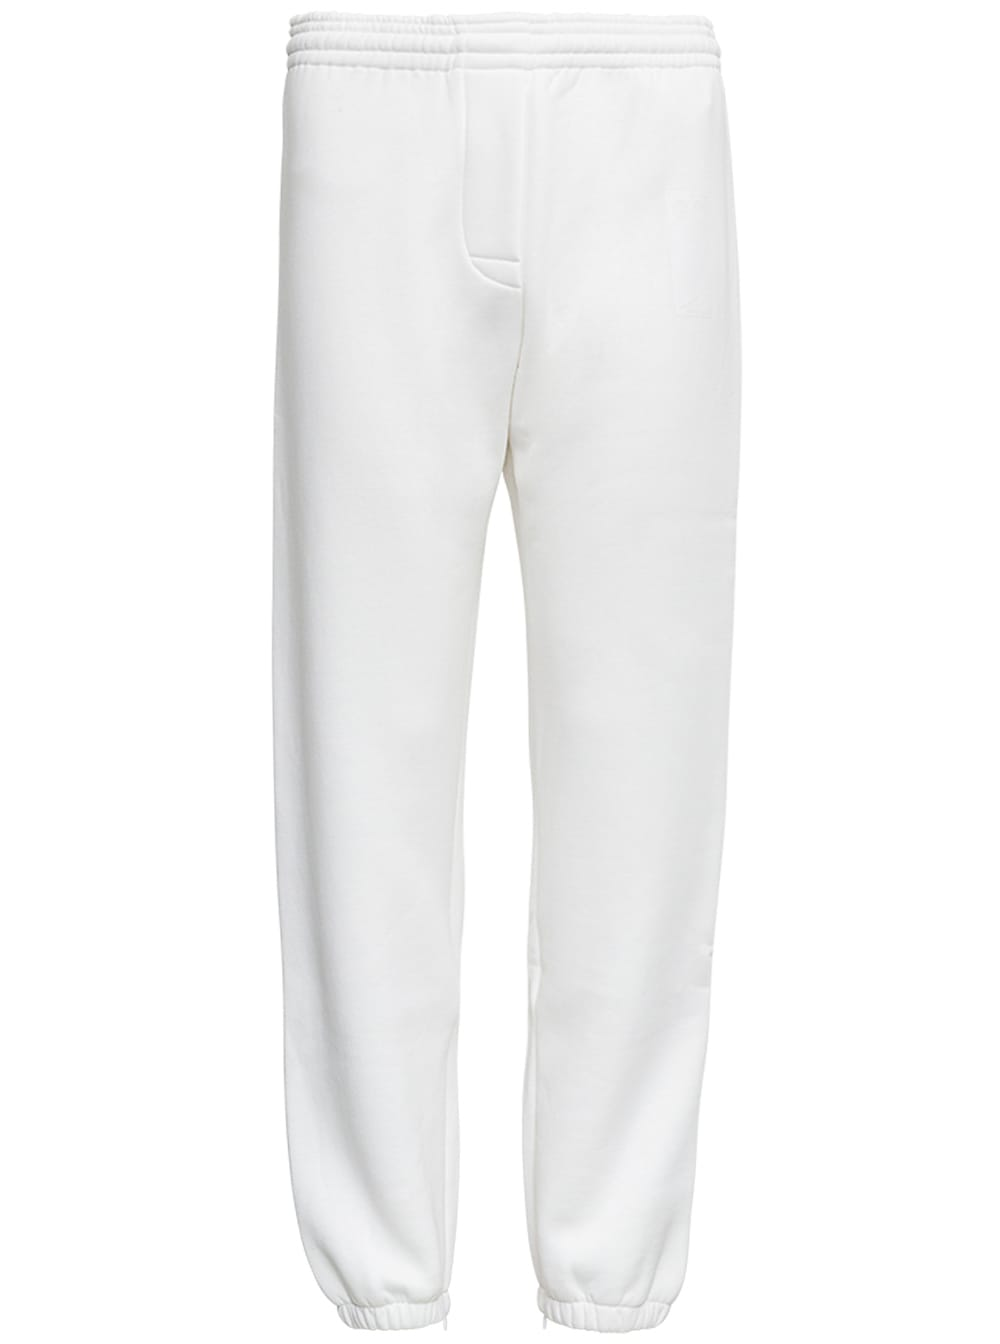 White Cotton Joggers With Drawstring